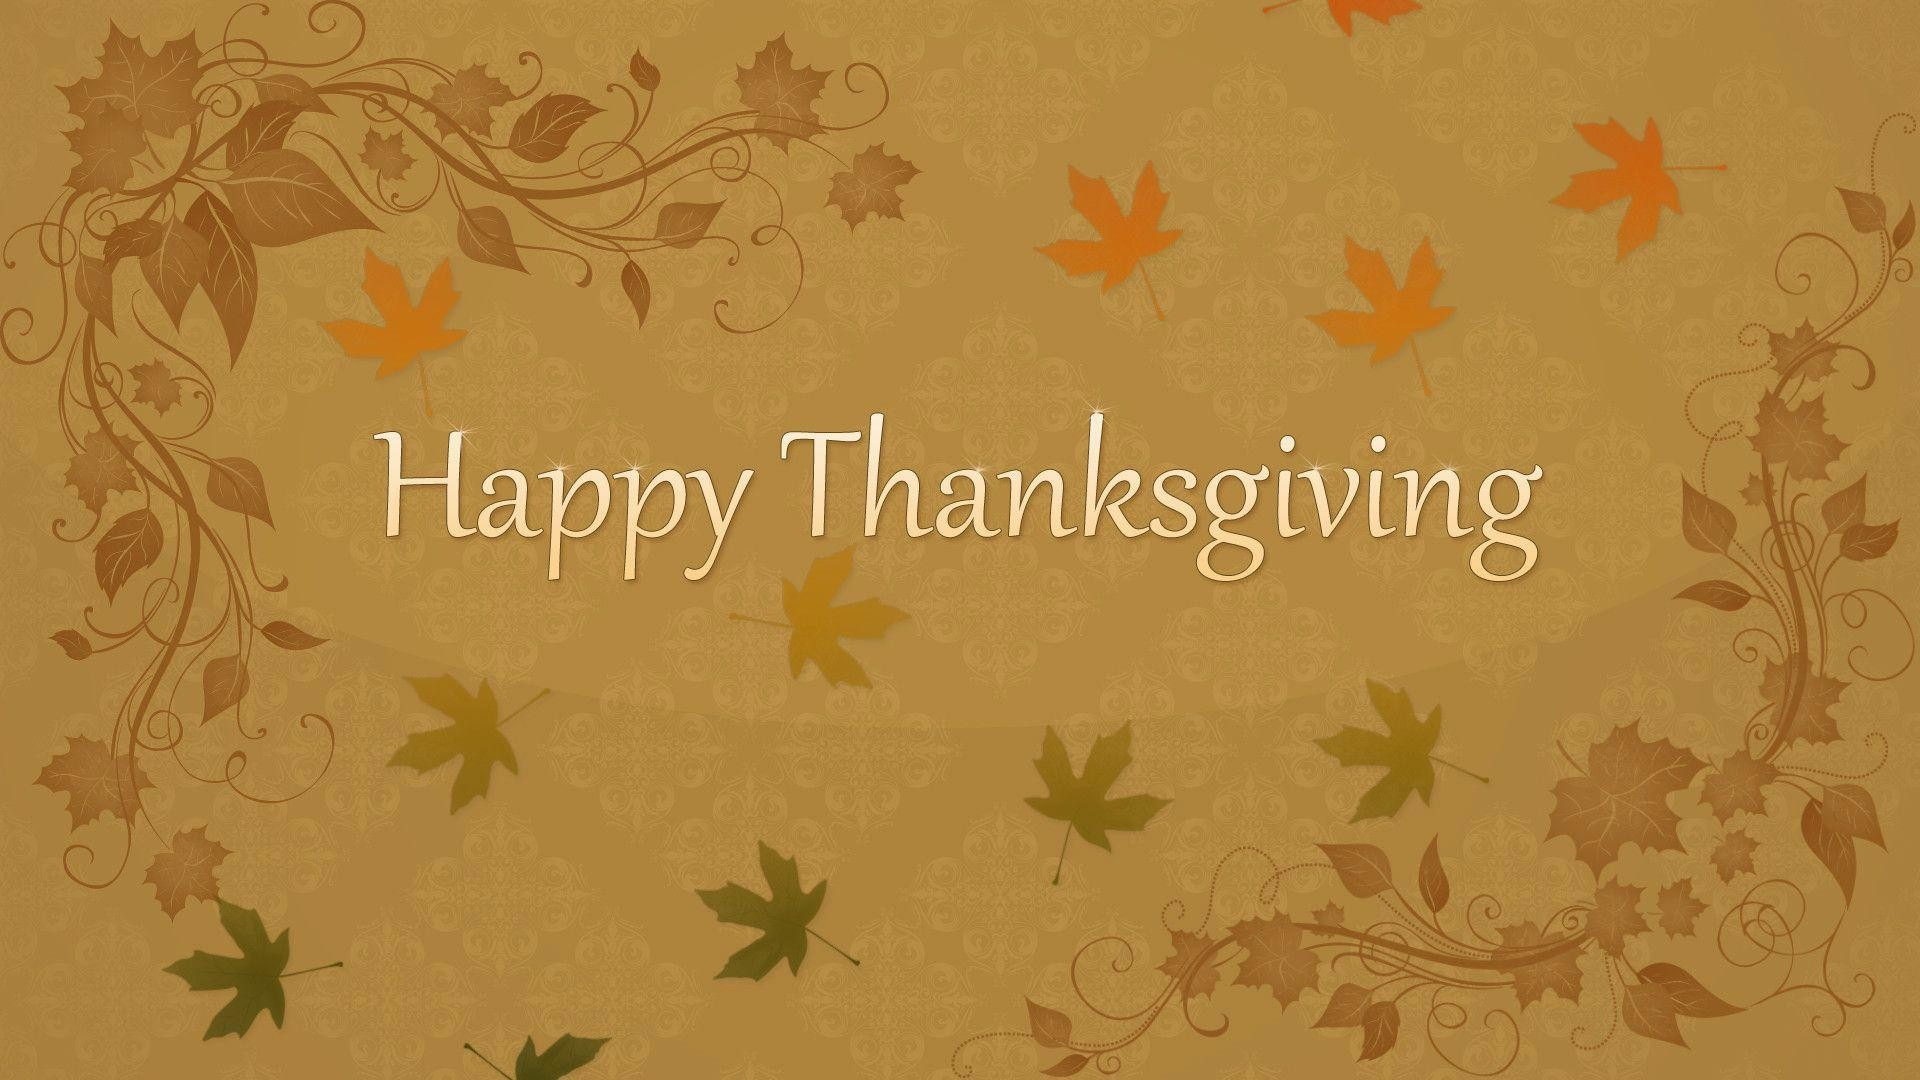 1920x1080 9 free thanksgiving desktop wallpapers backgrounds9 600x338